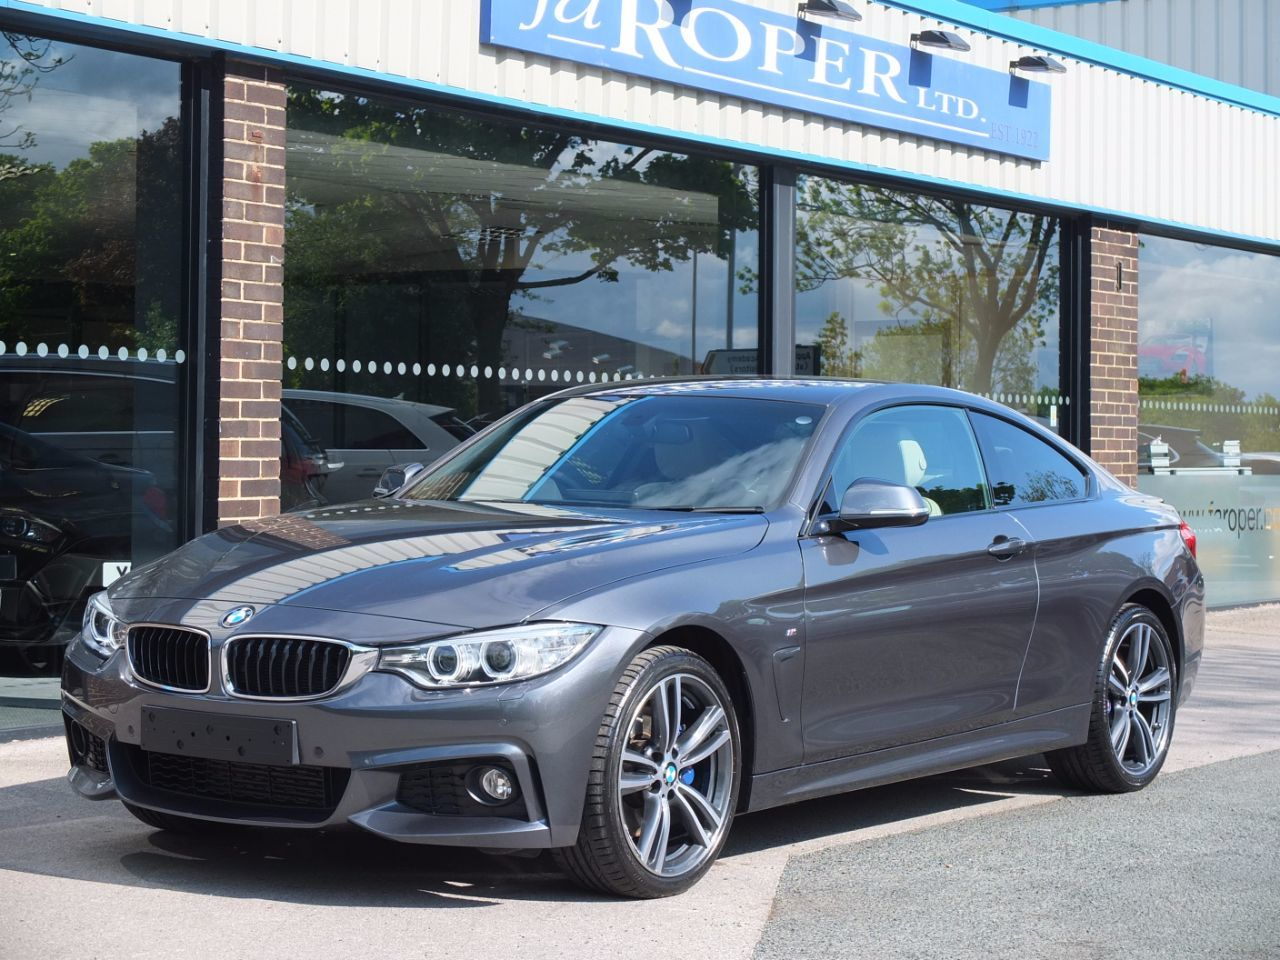 BMW 4 Series 2.0 420d xDrive M Sport Auto (M Sport Plus) Coupe Diesel Mineral Grey MetallicBMW 4 Series 2.0 420d xDrive M Sport Auto (M Sport Plus) Coupe Diesel Mineral Grey Metallic at fa Roper Ltd Bradford